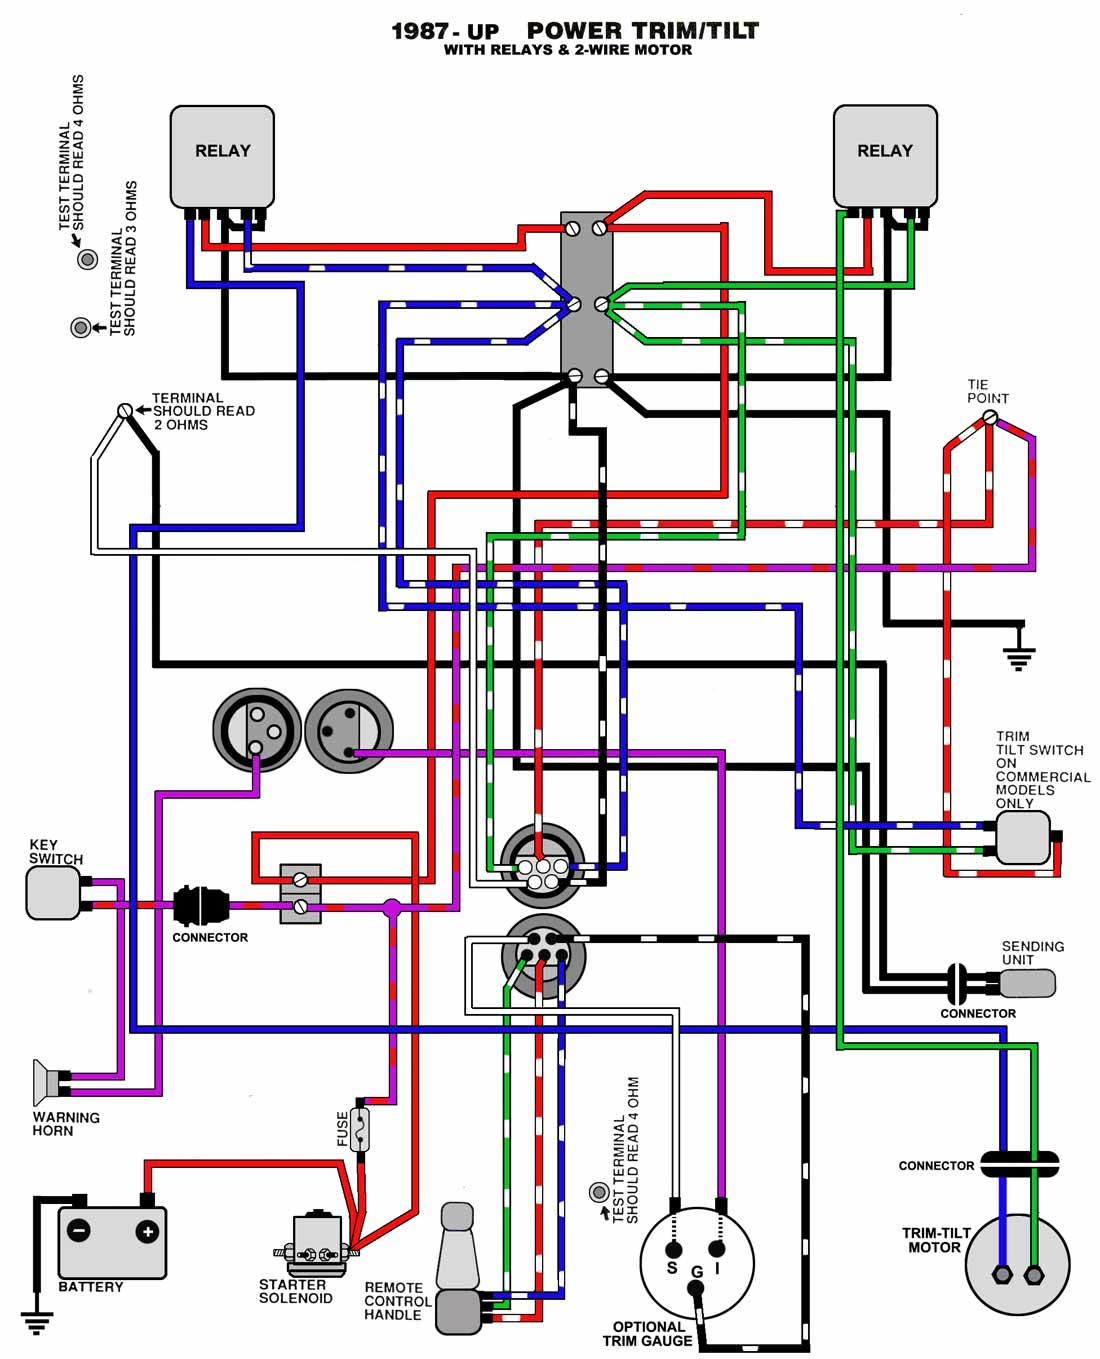 TnT_87_UP mastertech marine evinrude johnson outboard wiring diagrams evinrude ignition switch wiring diagram at bayanpartner.co